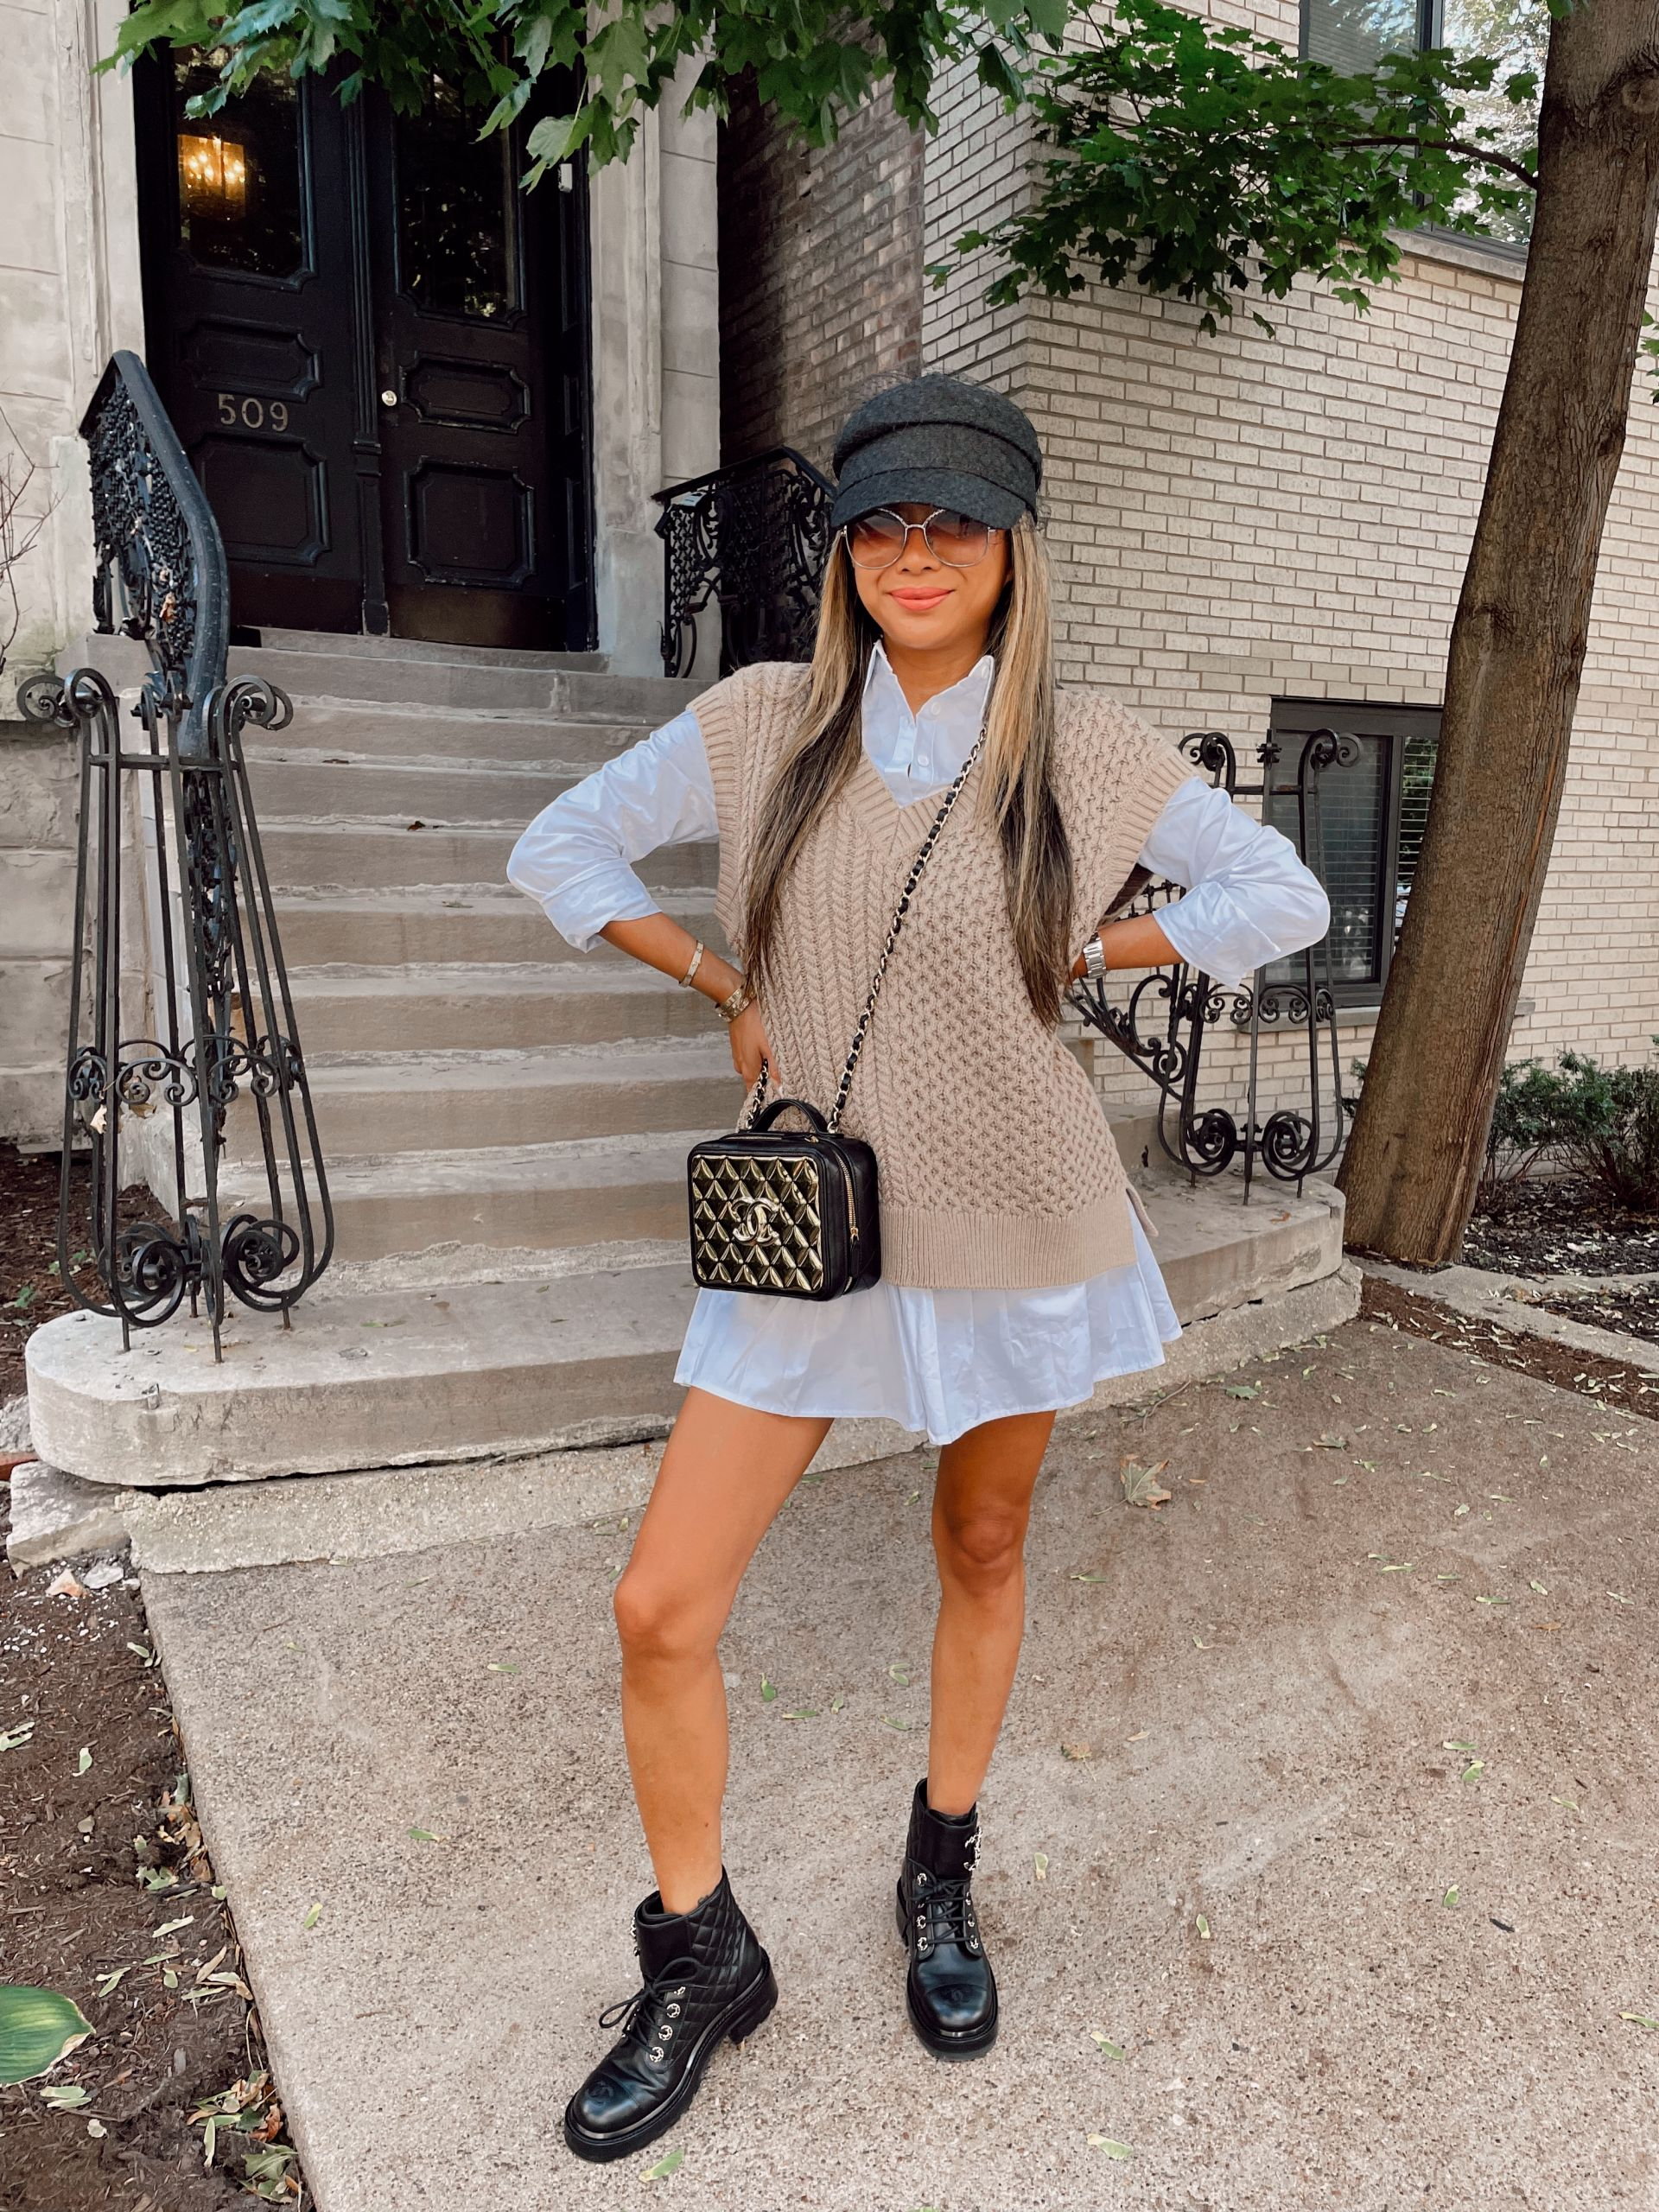 sweater vest and shirt dress, how to style a sweater vest, sweater vest inspiration, sweater vest outfit, sweater vest ideas, sweater vest outfit ideas, street style sweater vest outfit, neutral sweater vest, outfitideas, fall outfit ideas, fall 2021 outfits, fall 2021 trends, fashion blogger, style blogger, fashion photography, outfitphoto ideas, outfit photography ideas, Red Soles and Red Wine, Jen Worman